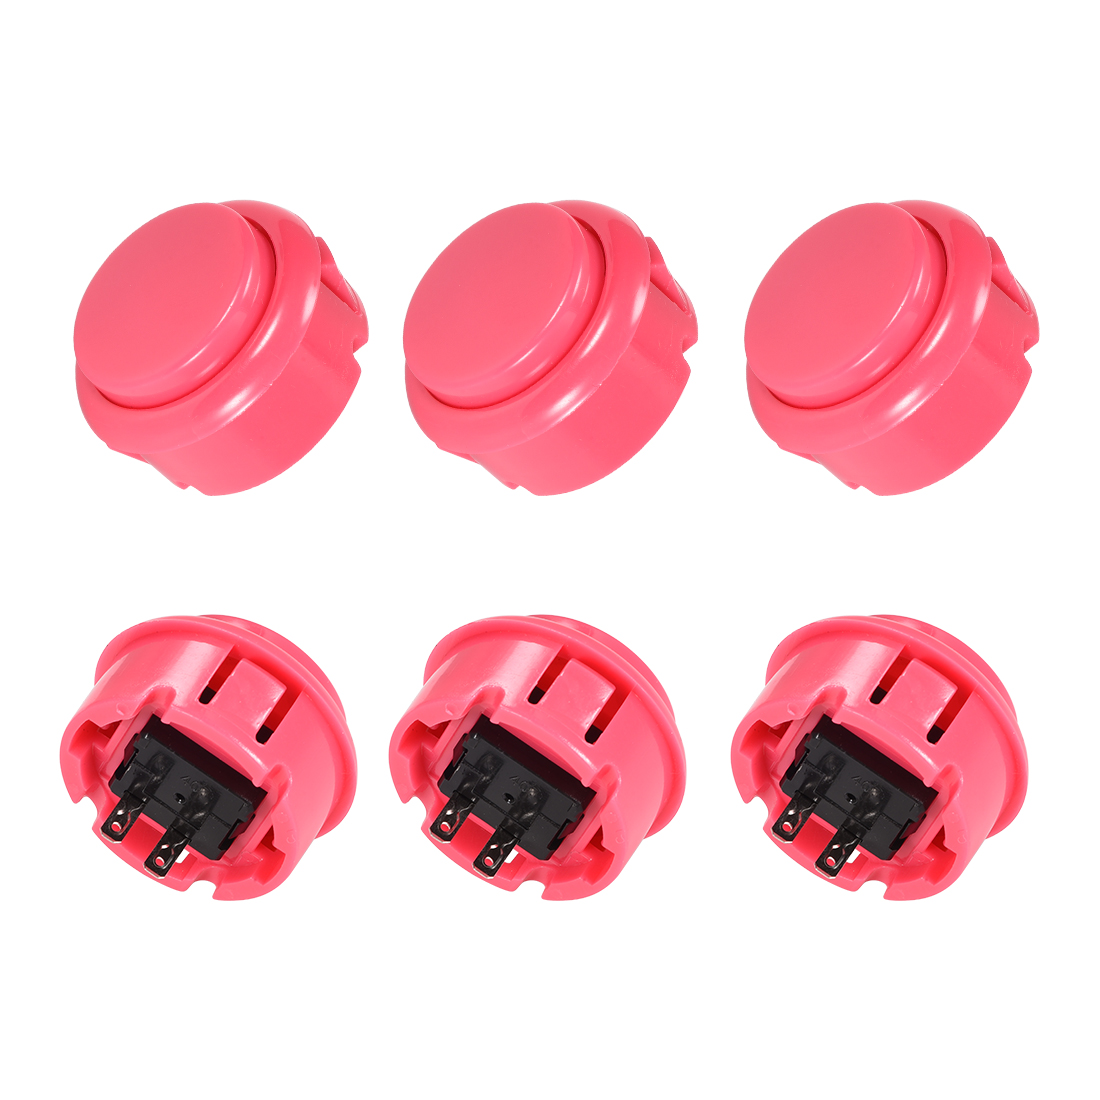 30mm Mounting Momentary Game Push Button Round for Video Games Pink 6pcs